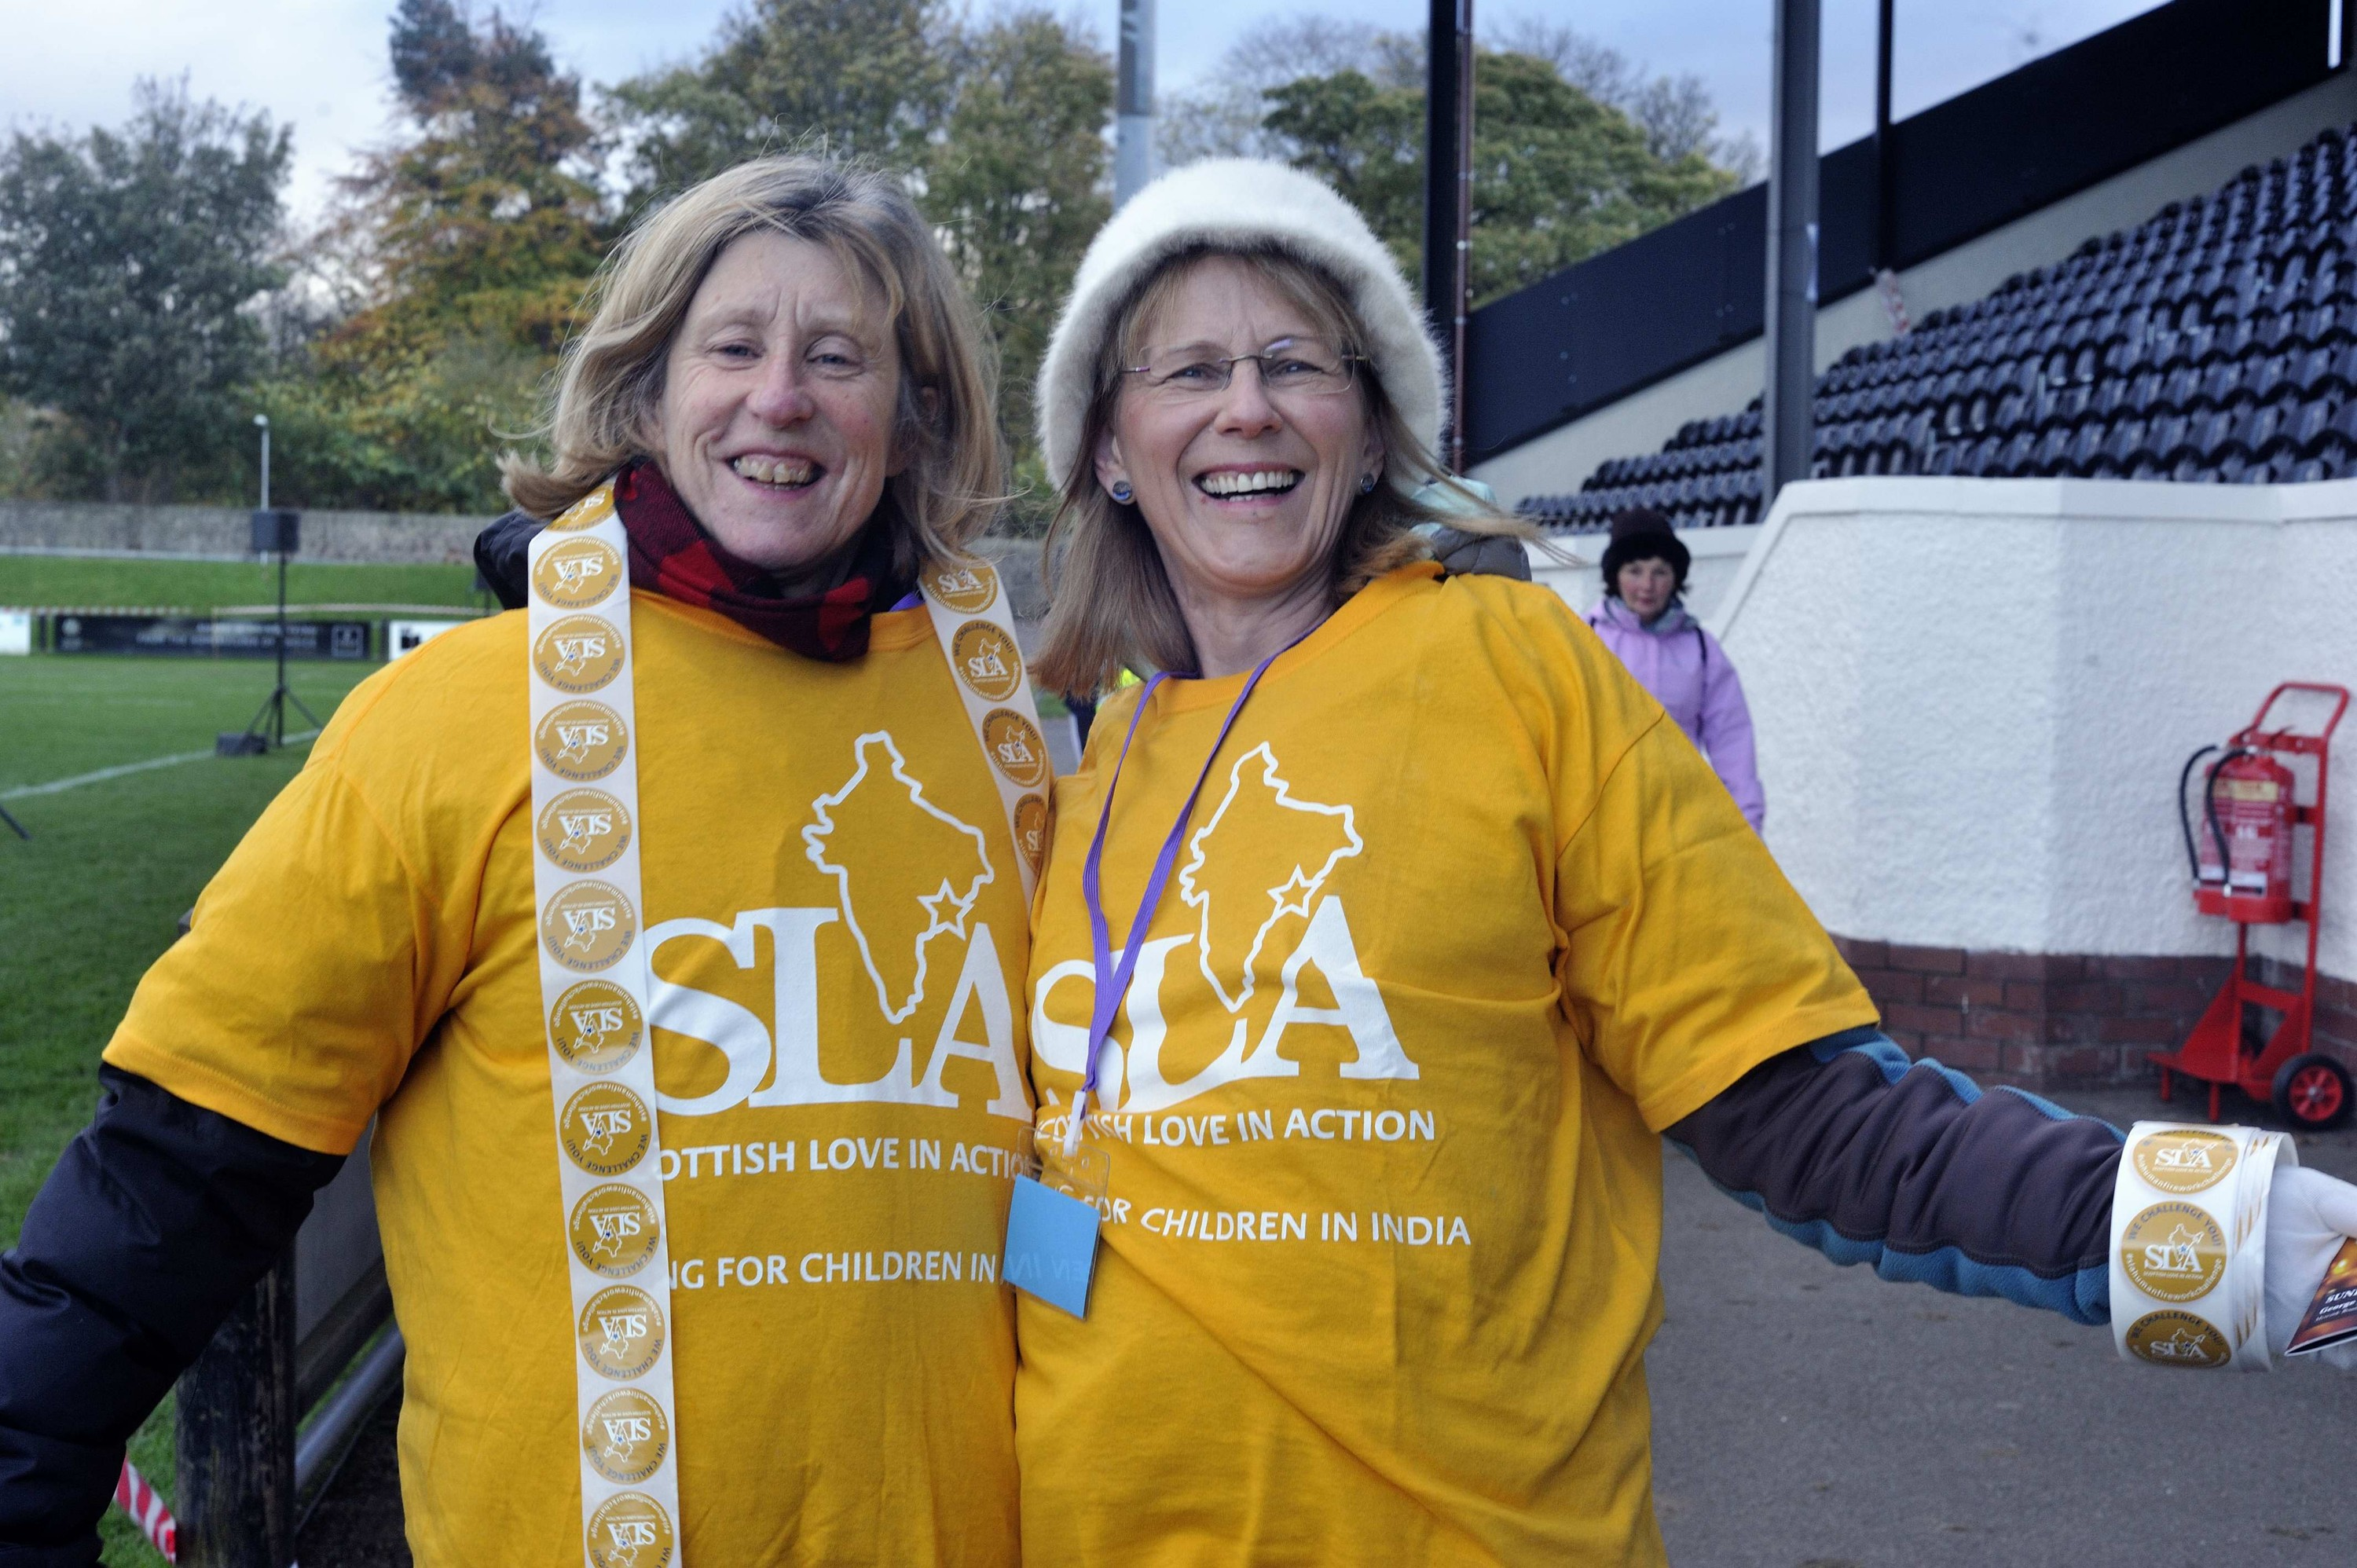 Two volunteers at the 2016 Scottish Love in Action annual fireworks event in Edinburgh, Scotland.